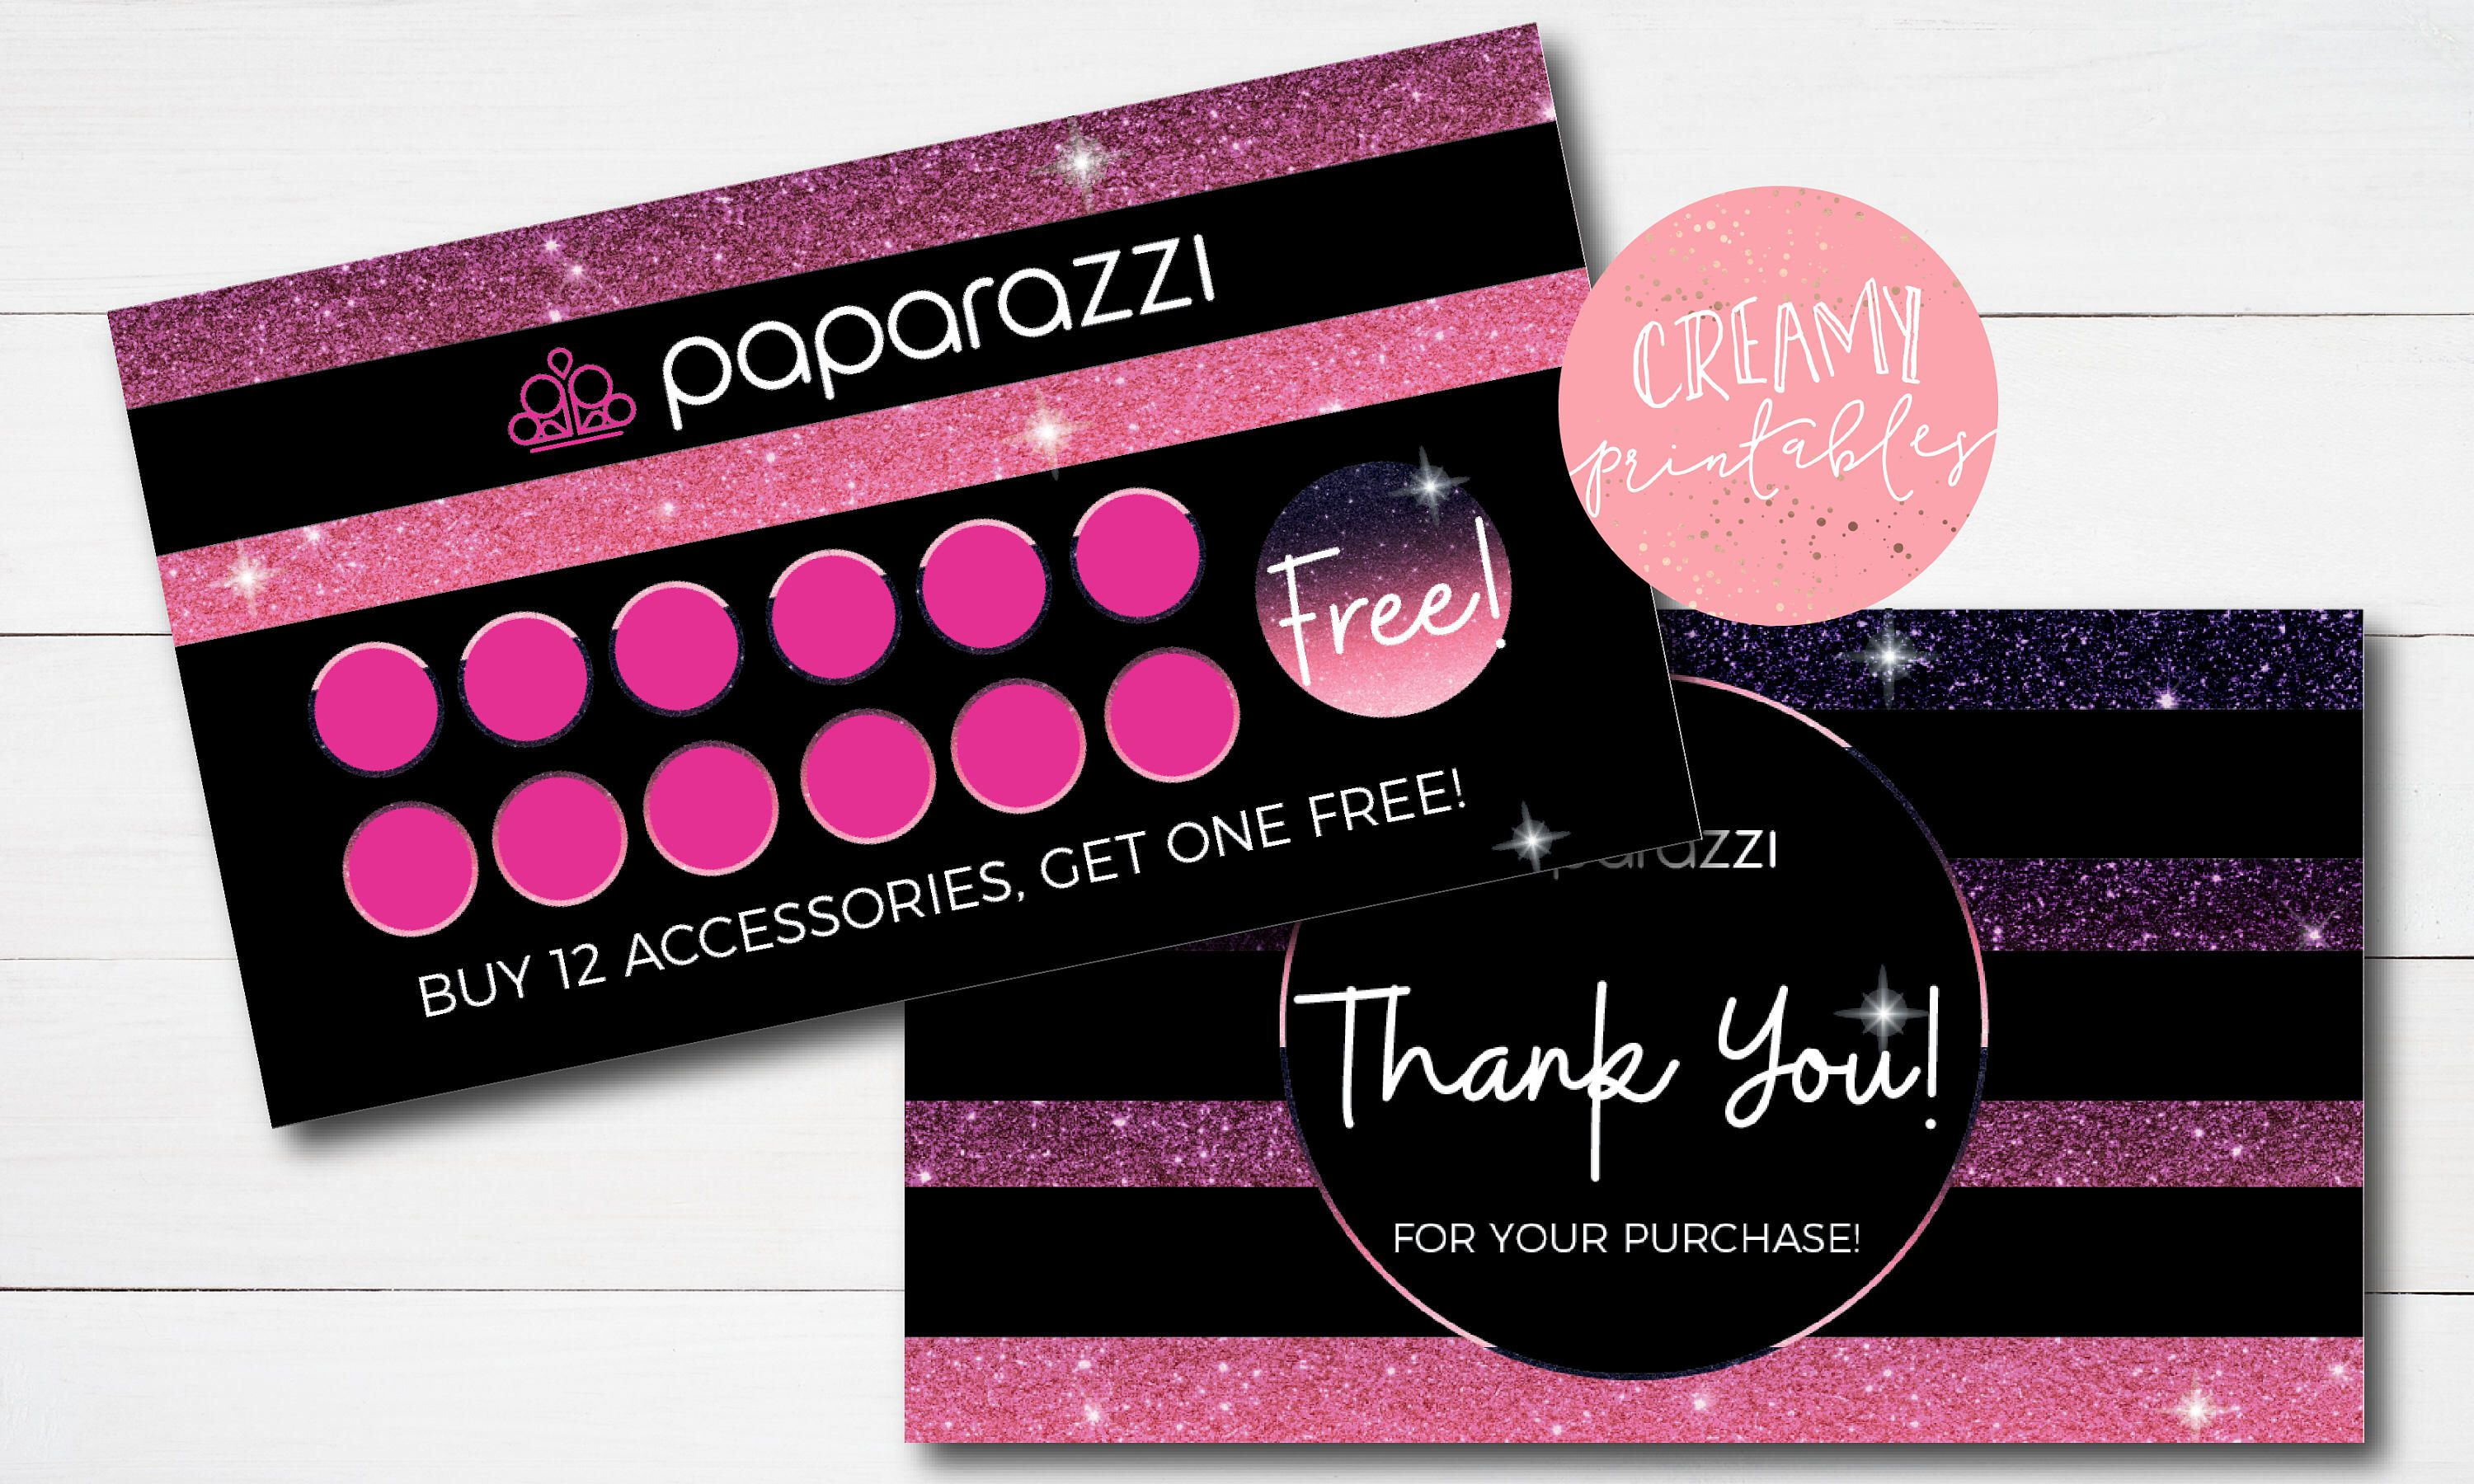 Paparazzi Business Cards, Free Personalized, Paparazzi Punch Card ...